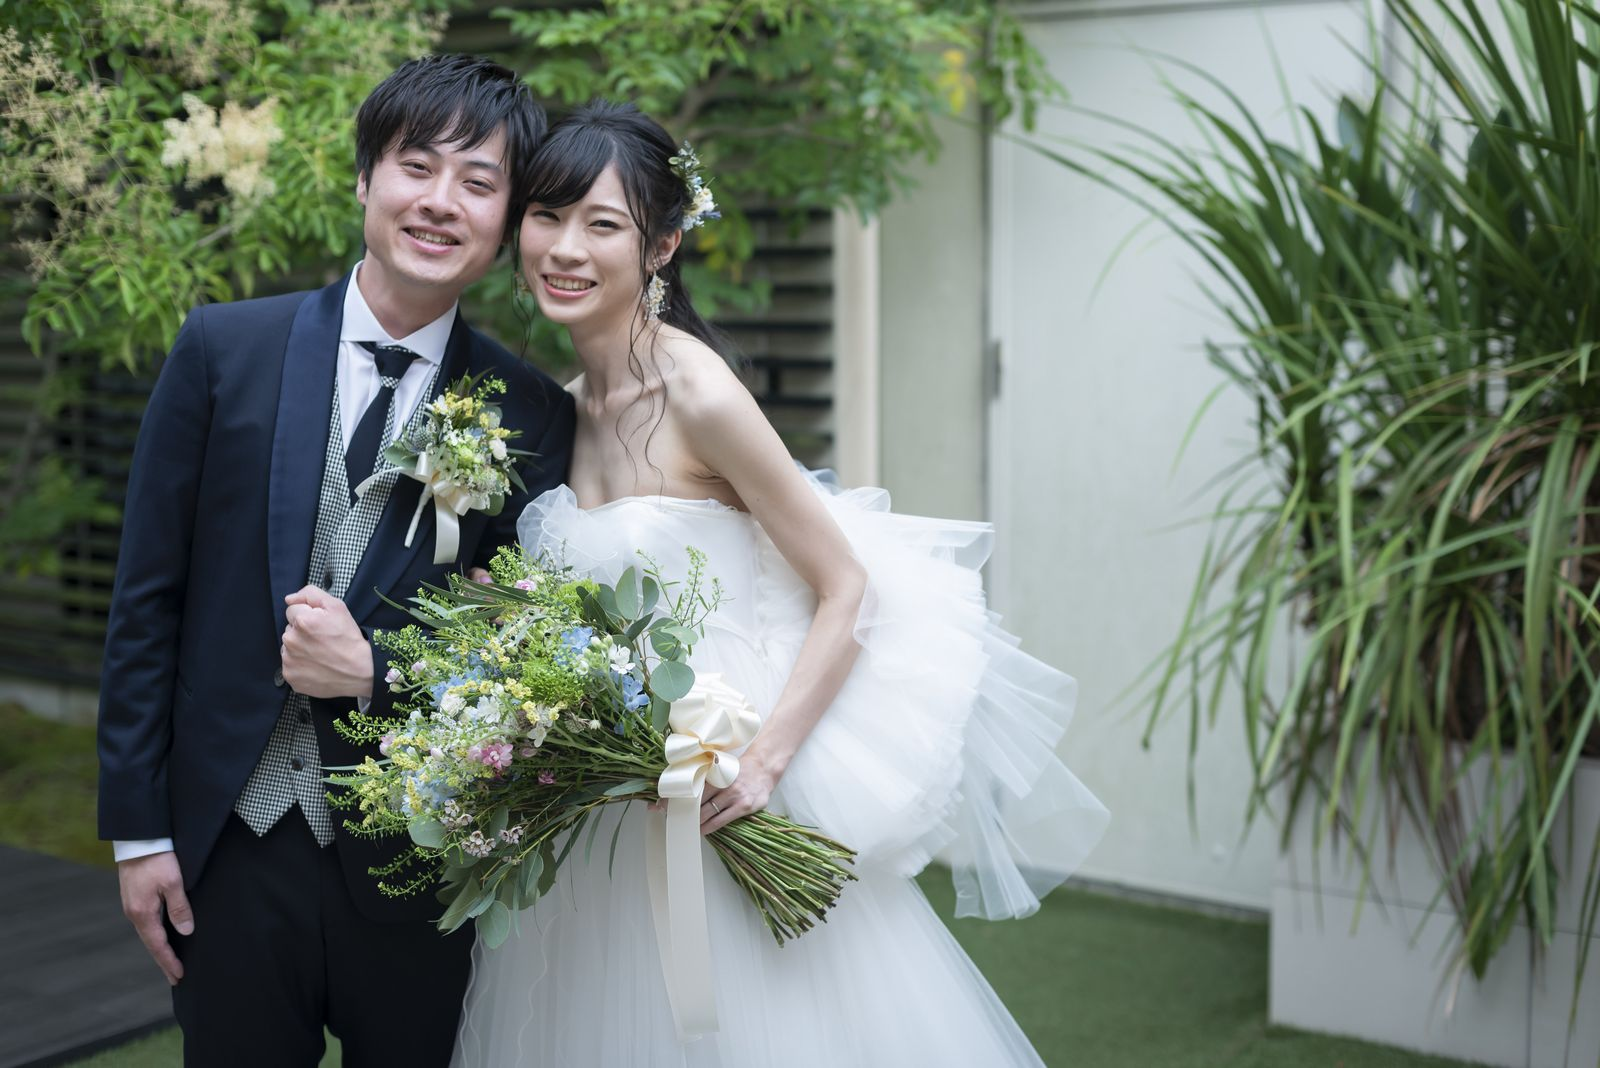 高松市の結婚式場アイルバレクラブ 新郎新婦